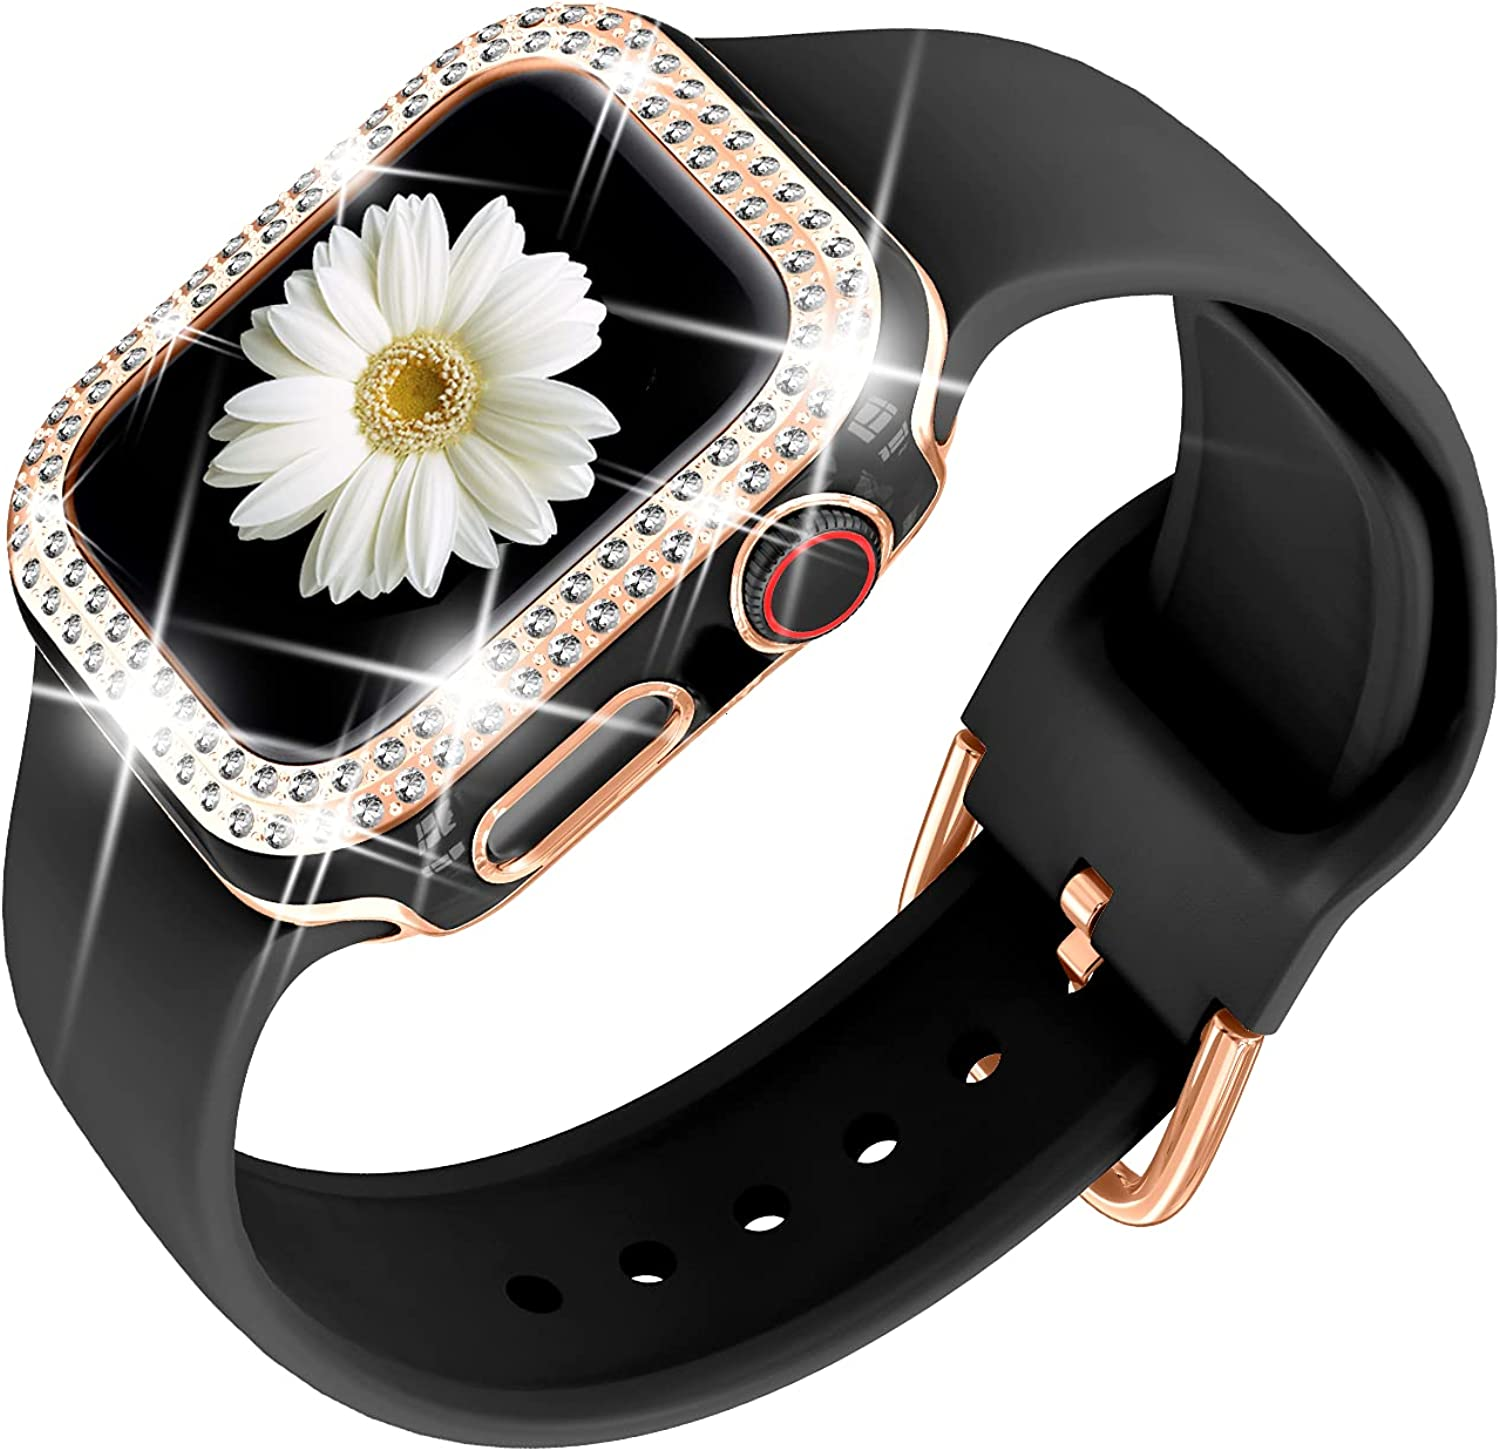 DABAOZA Compatible for Apple Watch Band with Bumper Glitter Case With Rosegold Buckle, Women Silicone Soft Comfortable Adjustable Strap with Rosegold Buckle for iWatch Series